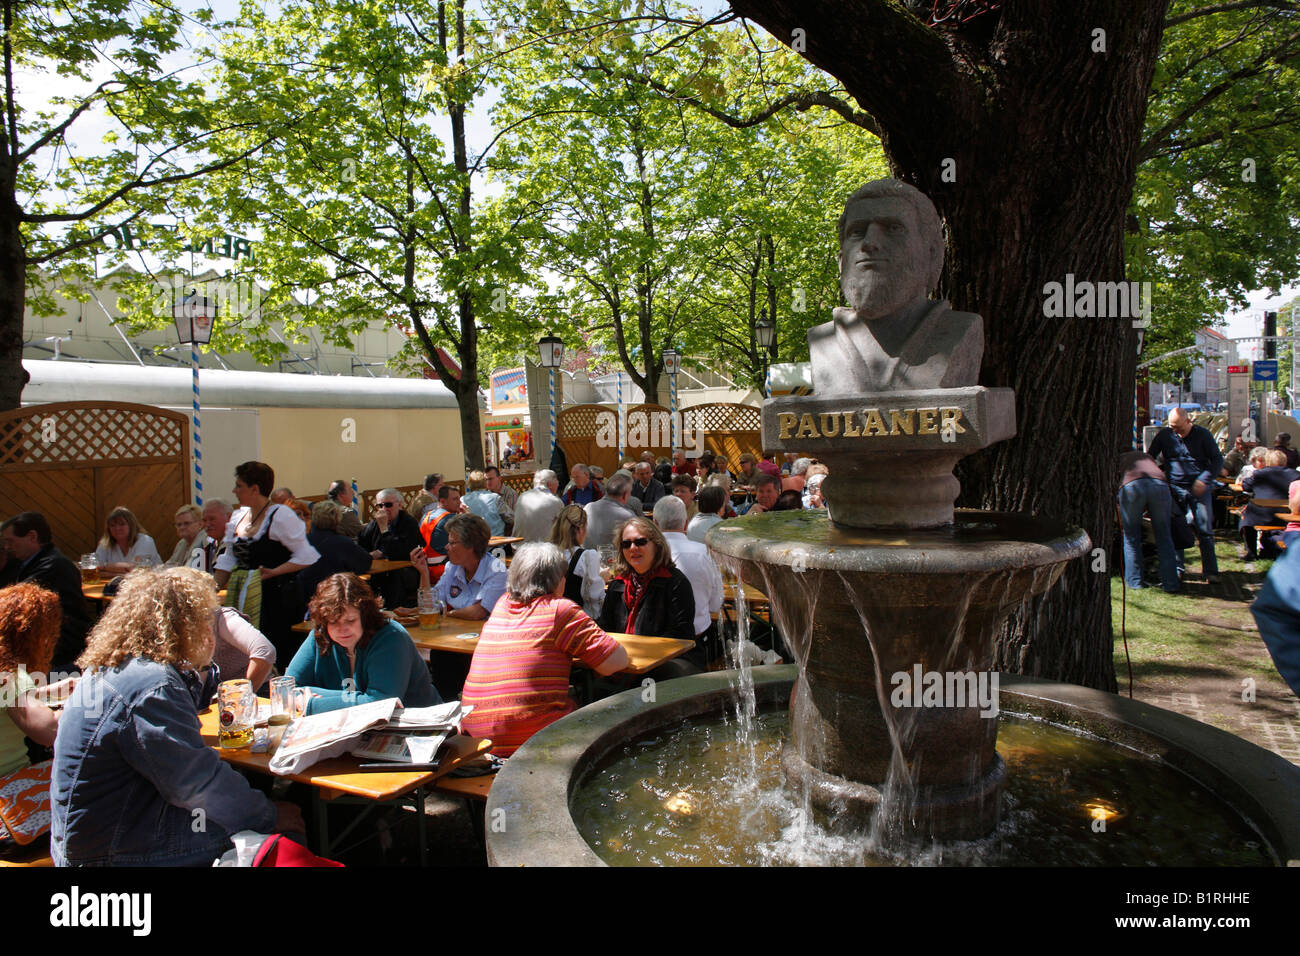 Beer Garden At The Paulaner Fountain During Auer Dult Market In May Stock Photo Royalty Free